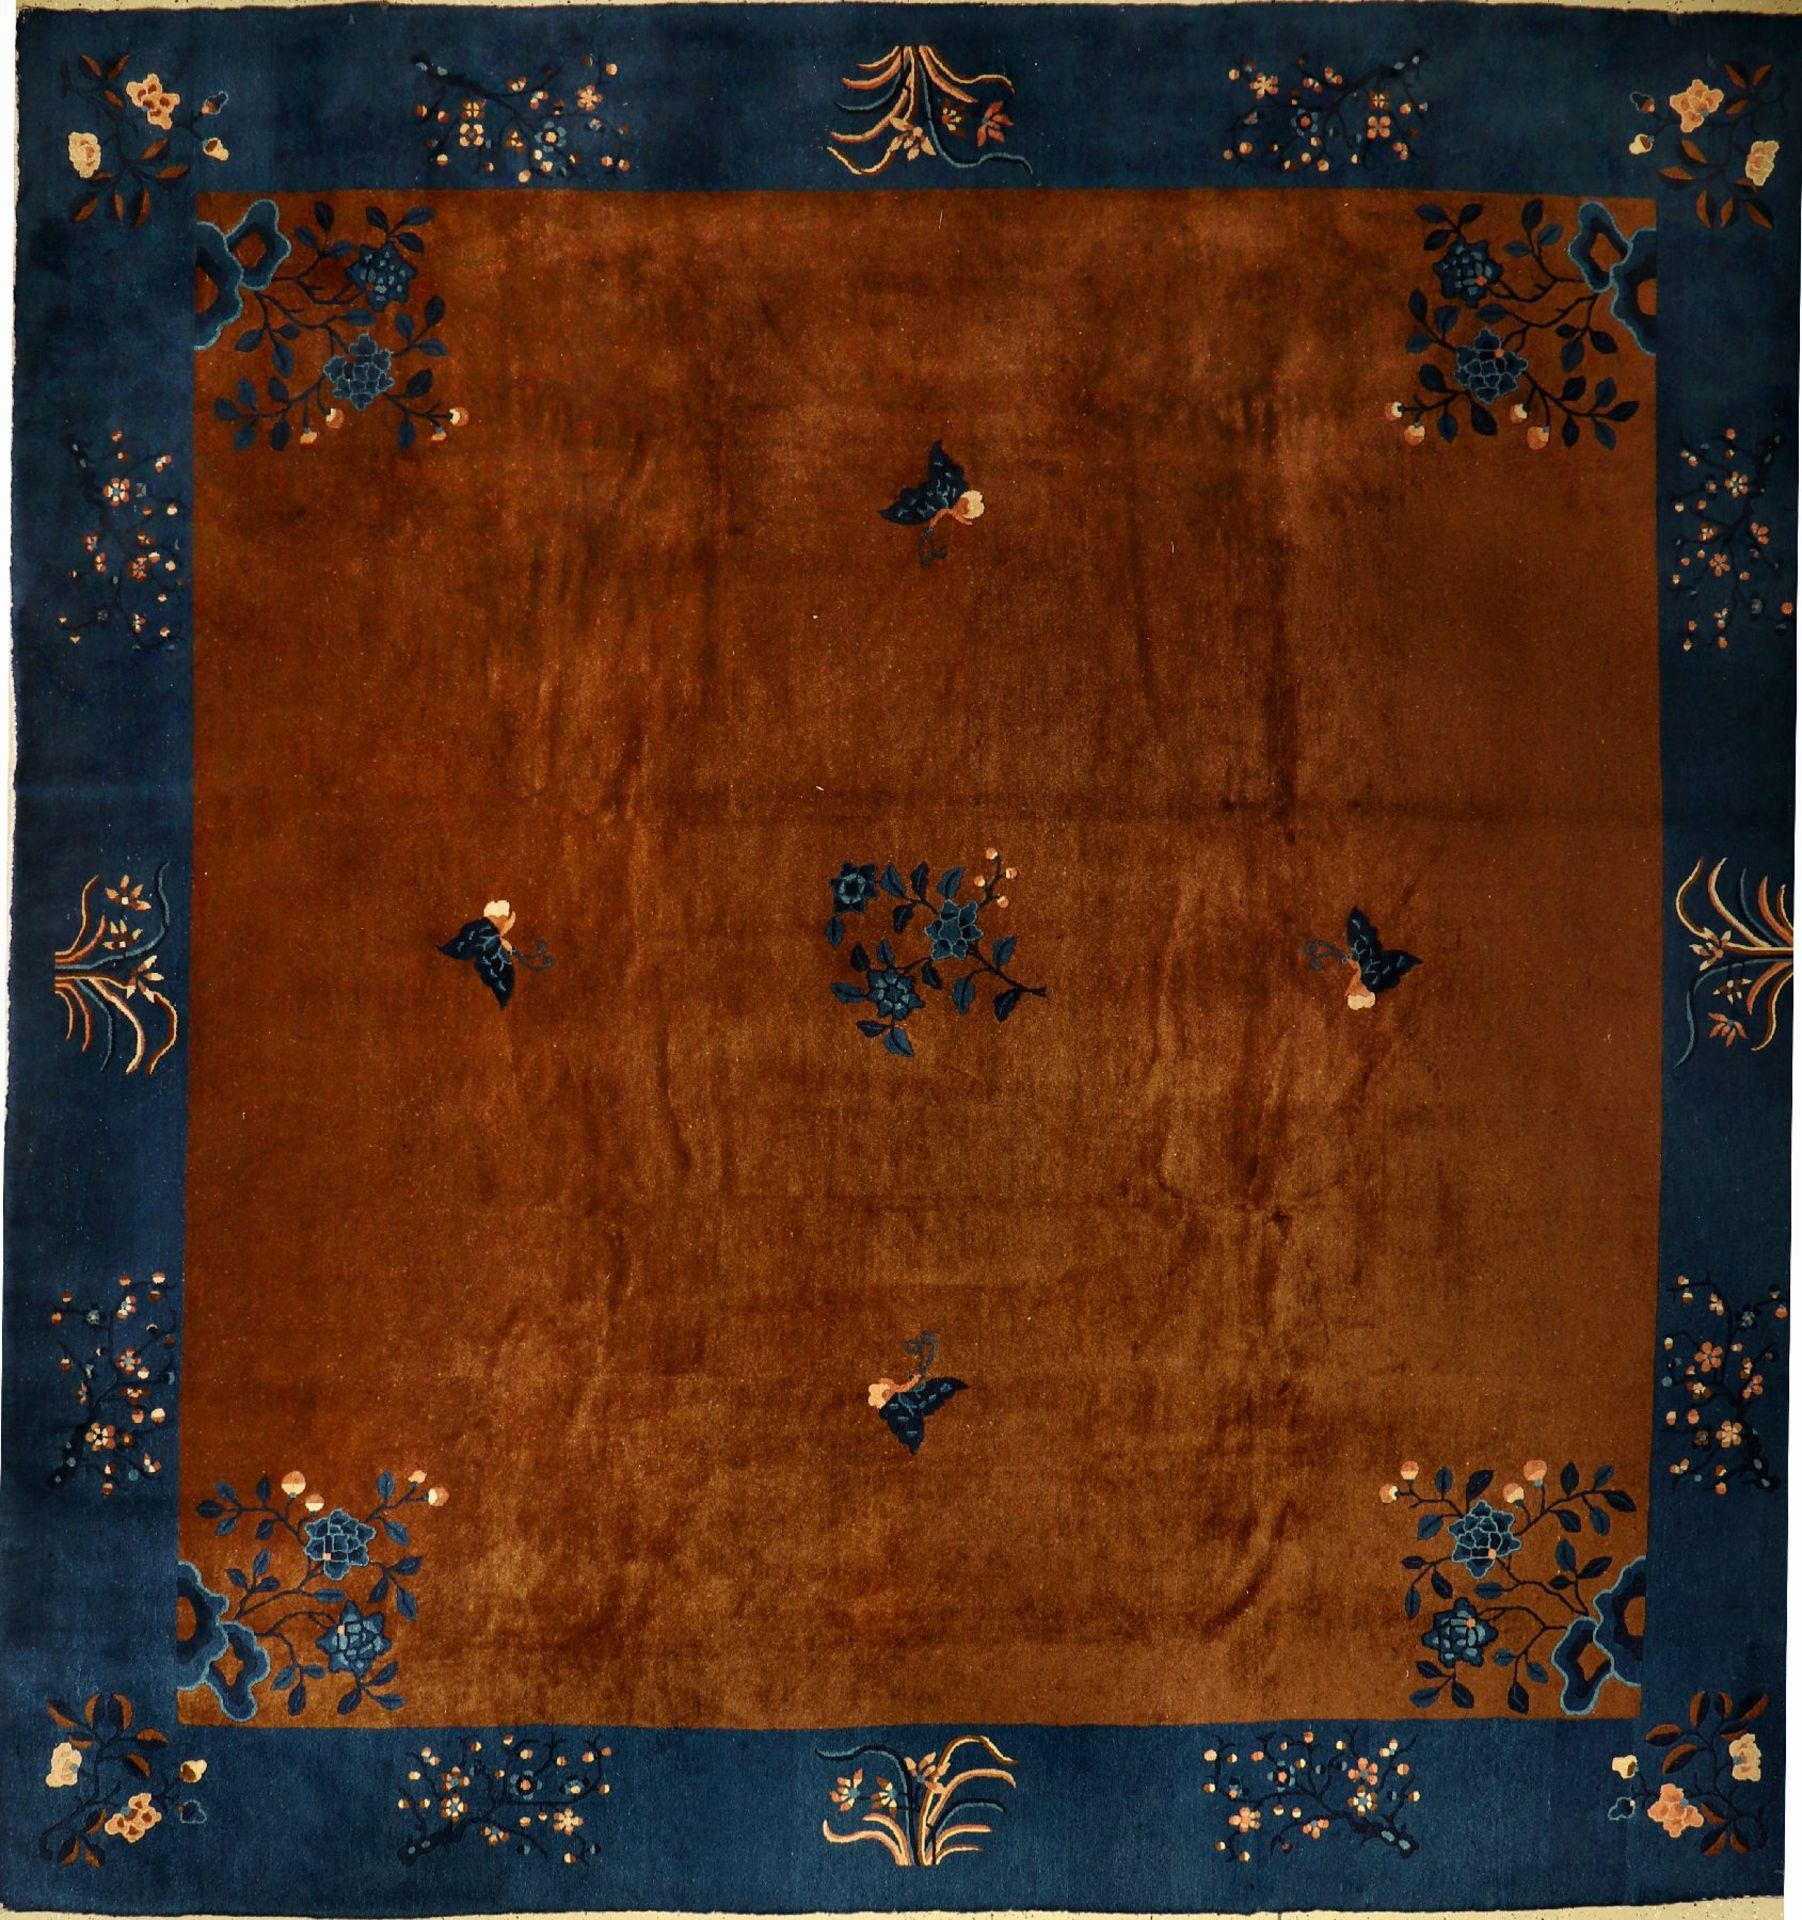 Beijing carpet, China, late 19th century, woolon cotton, approx. 370 x 358 cm, condition: 2.